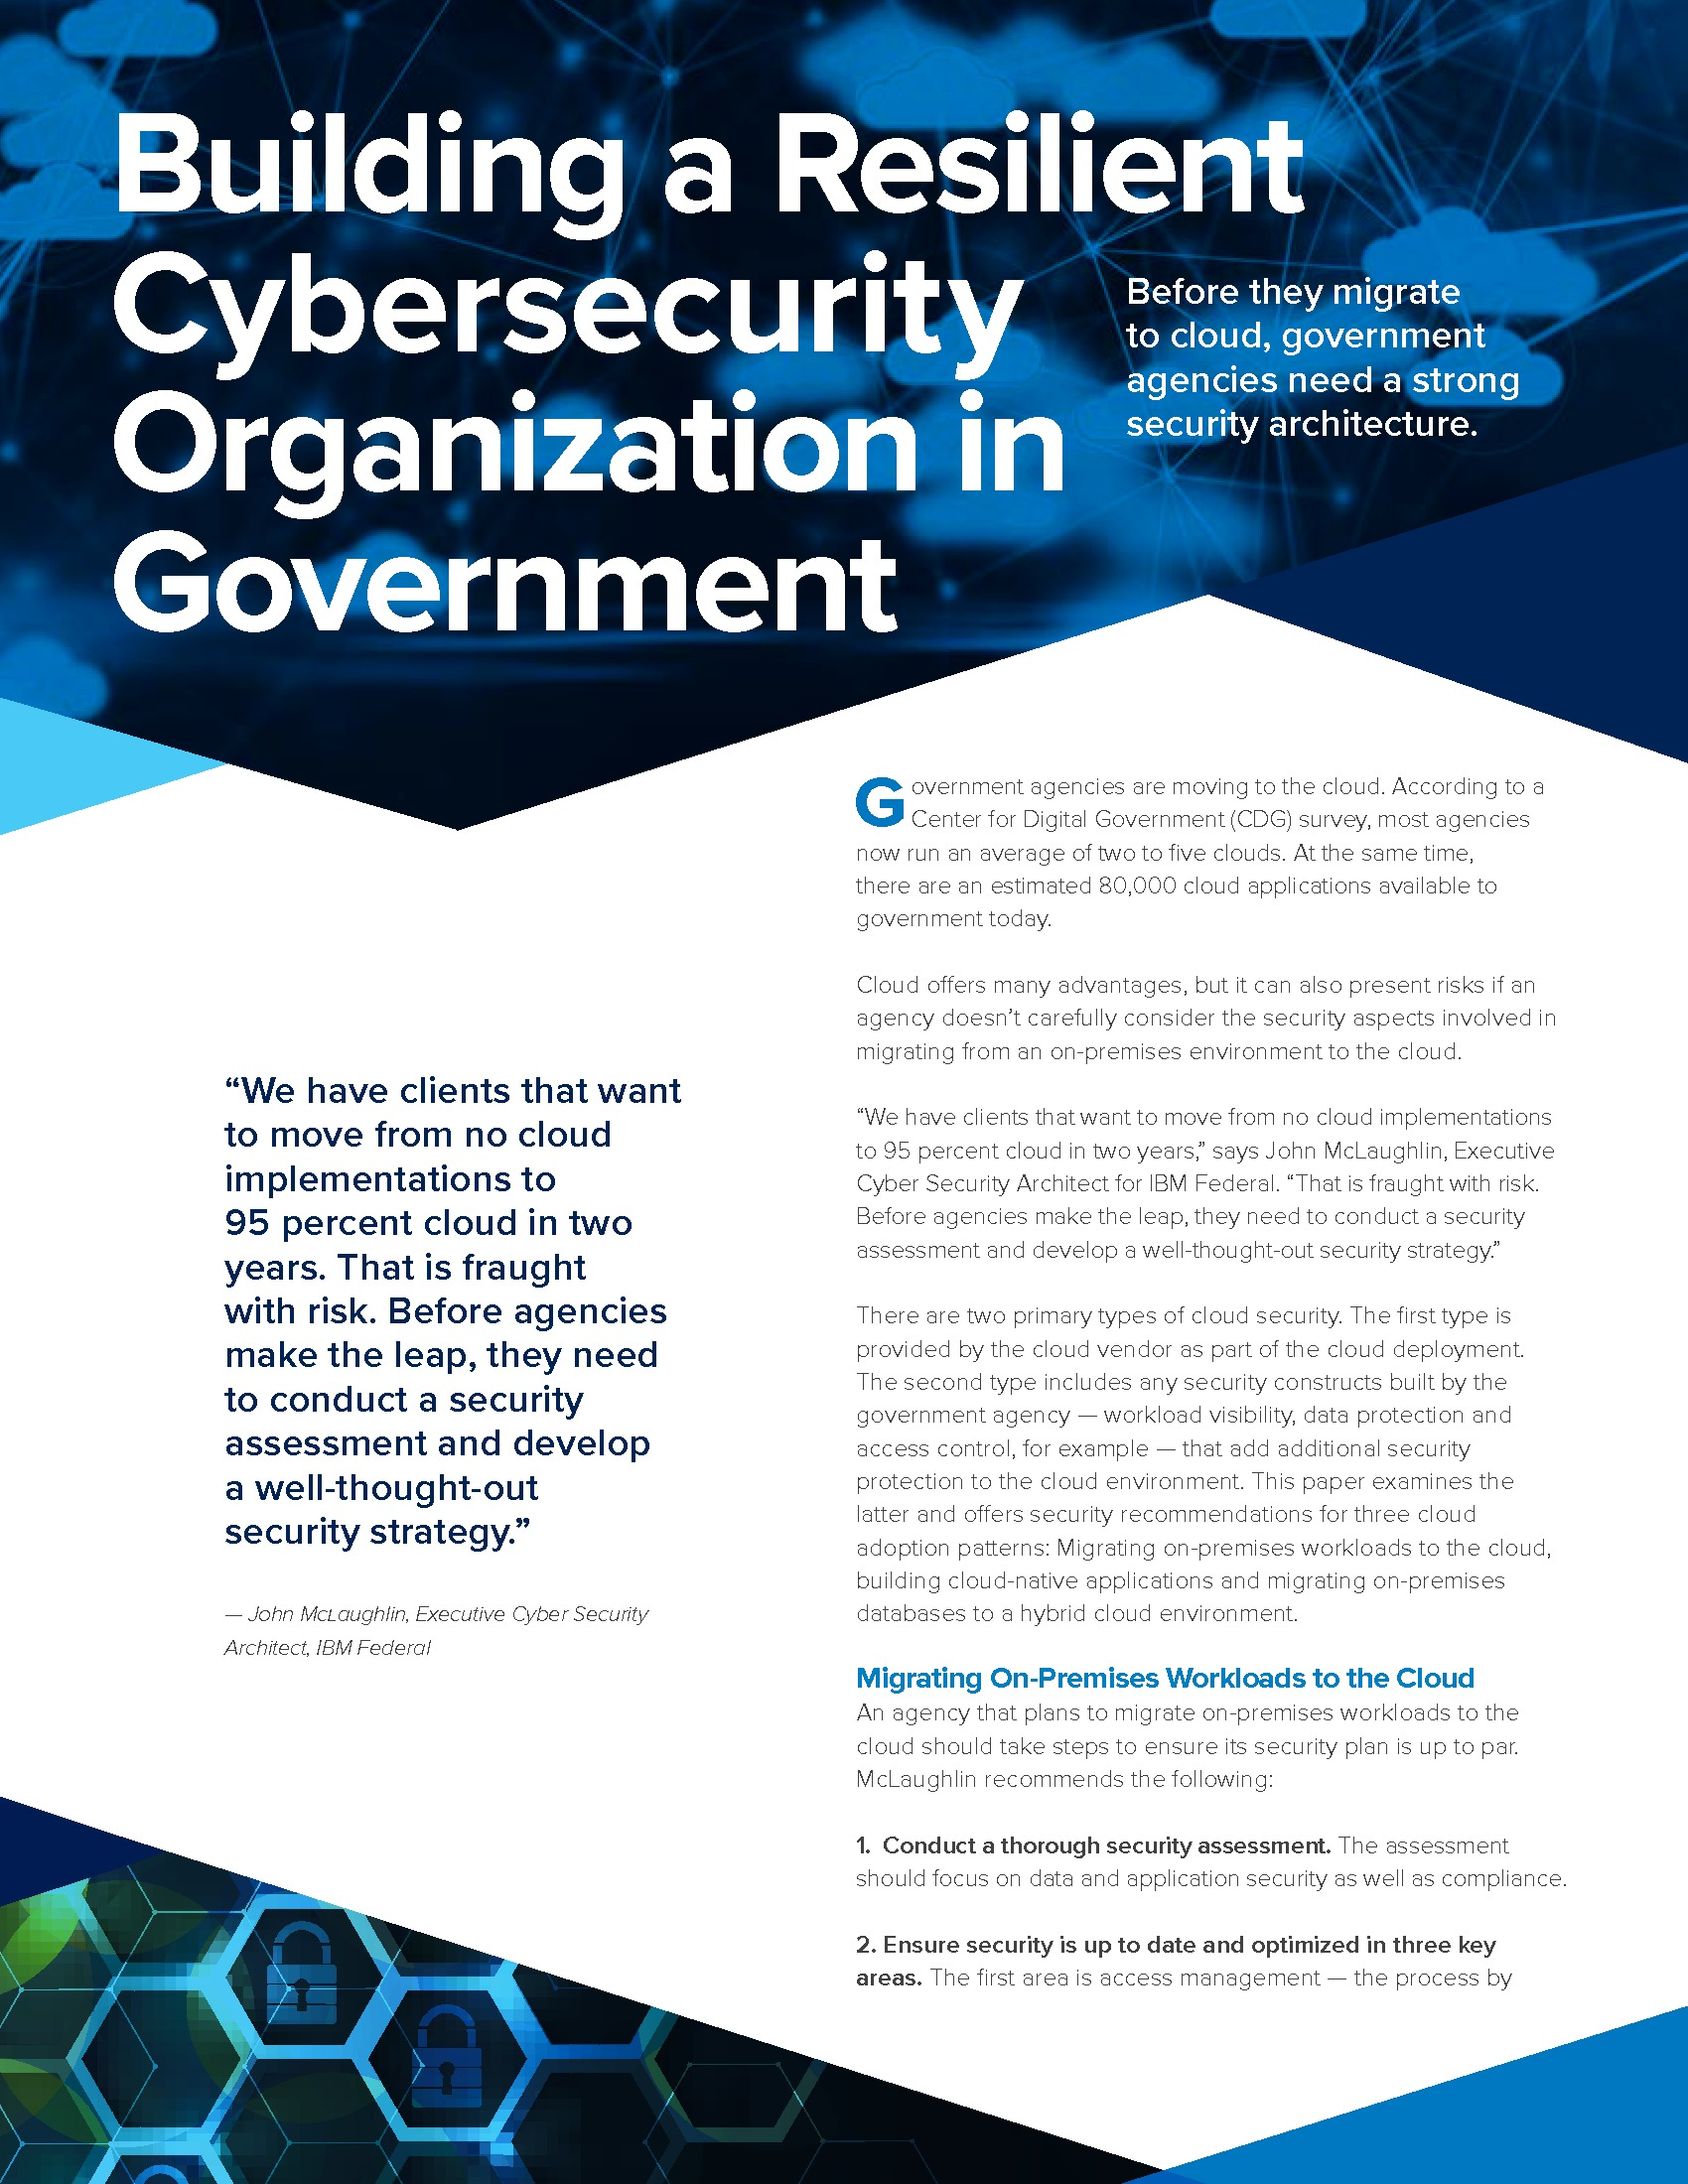 Paper: How to Build a Resilient Cybersecurity Organization in Government